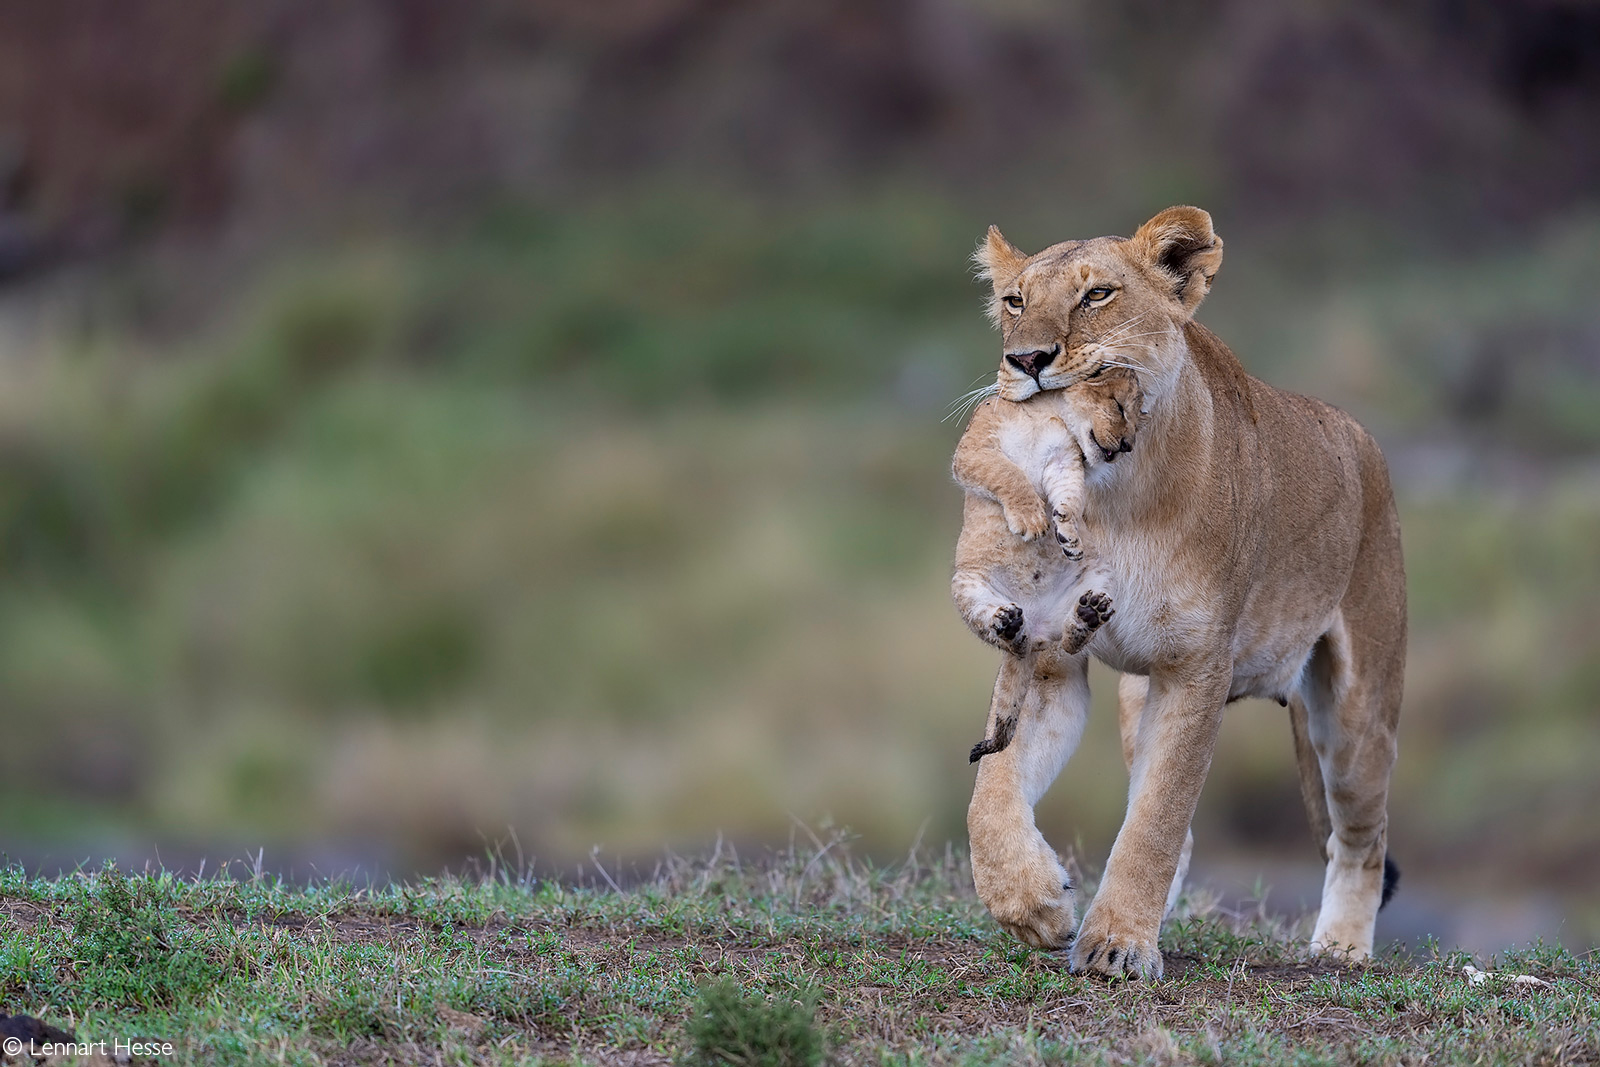 A lioness in the process of moving one of her cubs. Maasai Mara National Reserve, Kenya © Lennart Hessel